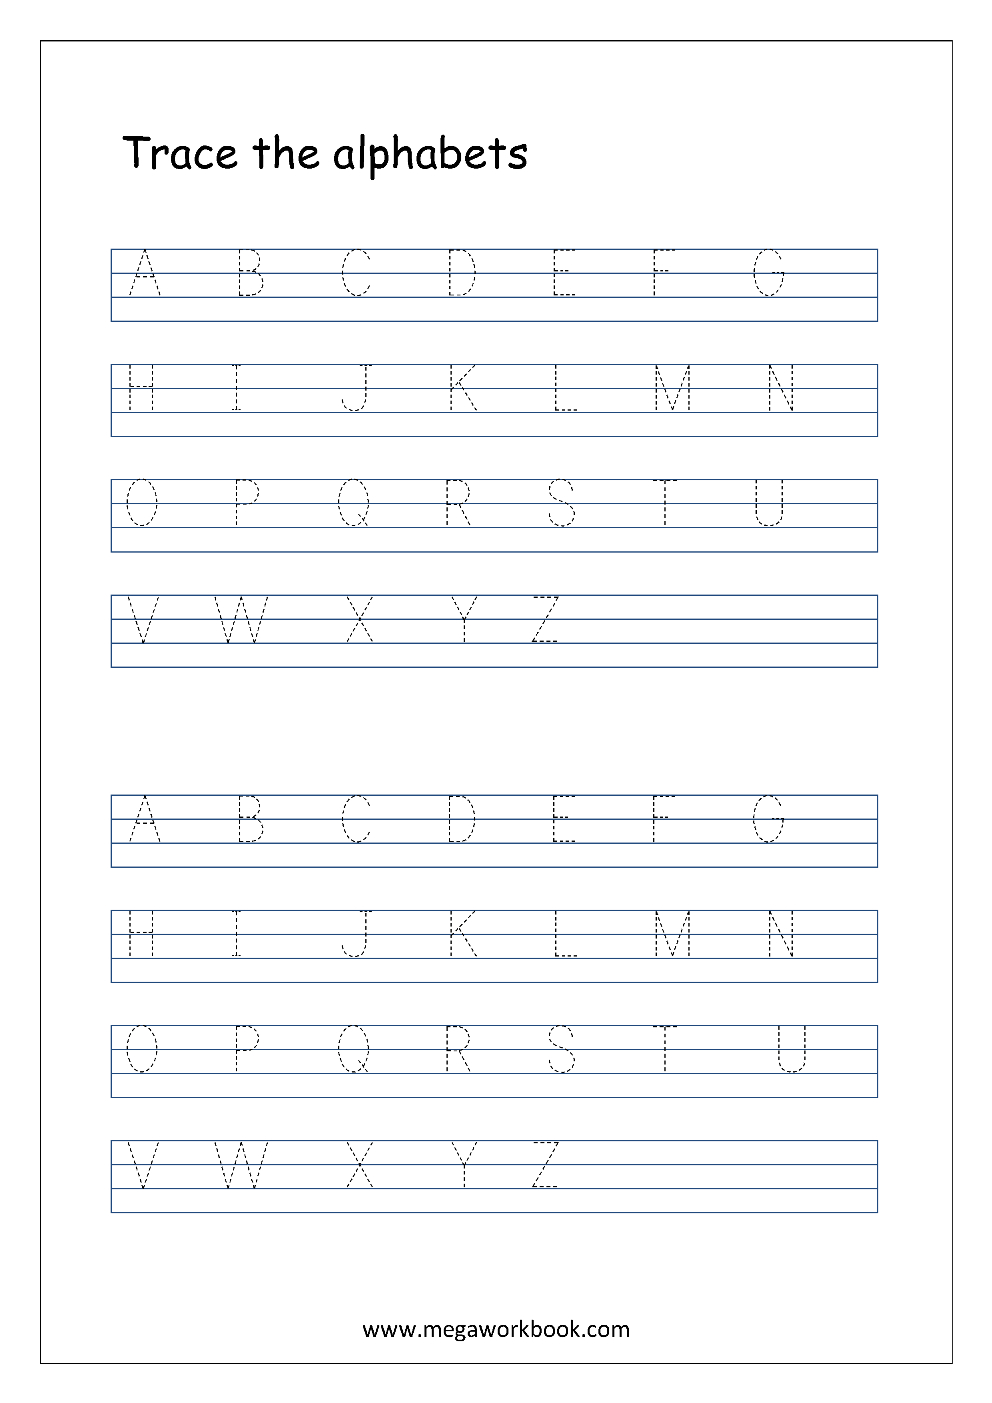 English Worksheet - Alphabet Tracing In 4 Lines - Capital inside Tracing Uppercase Letters Pdf